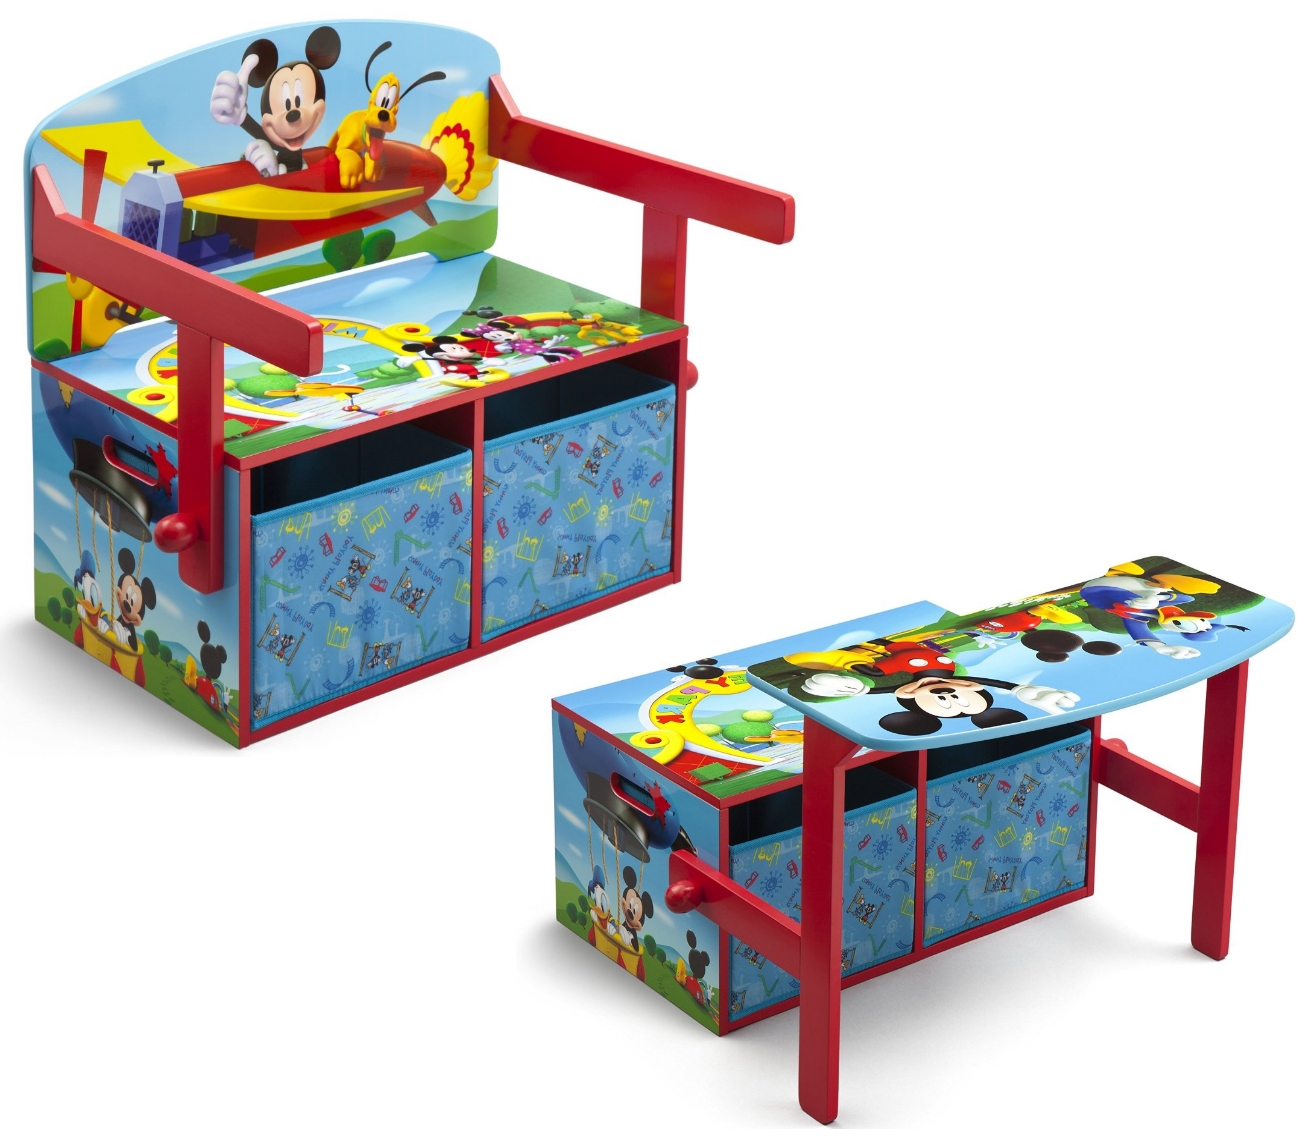 kinderbank disney bank mickey mouse 3 in 1 aufbewahrung sitzbank spielzeugkiste ebay. Black Bedroom Furniture Sets. Home Design Ideas